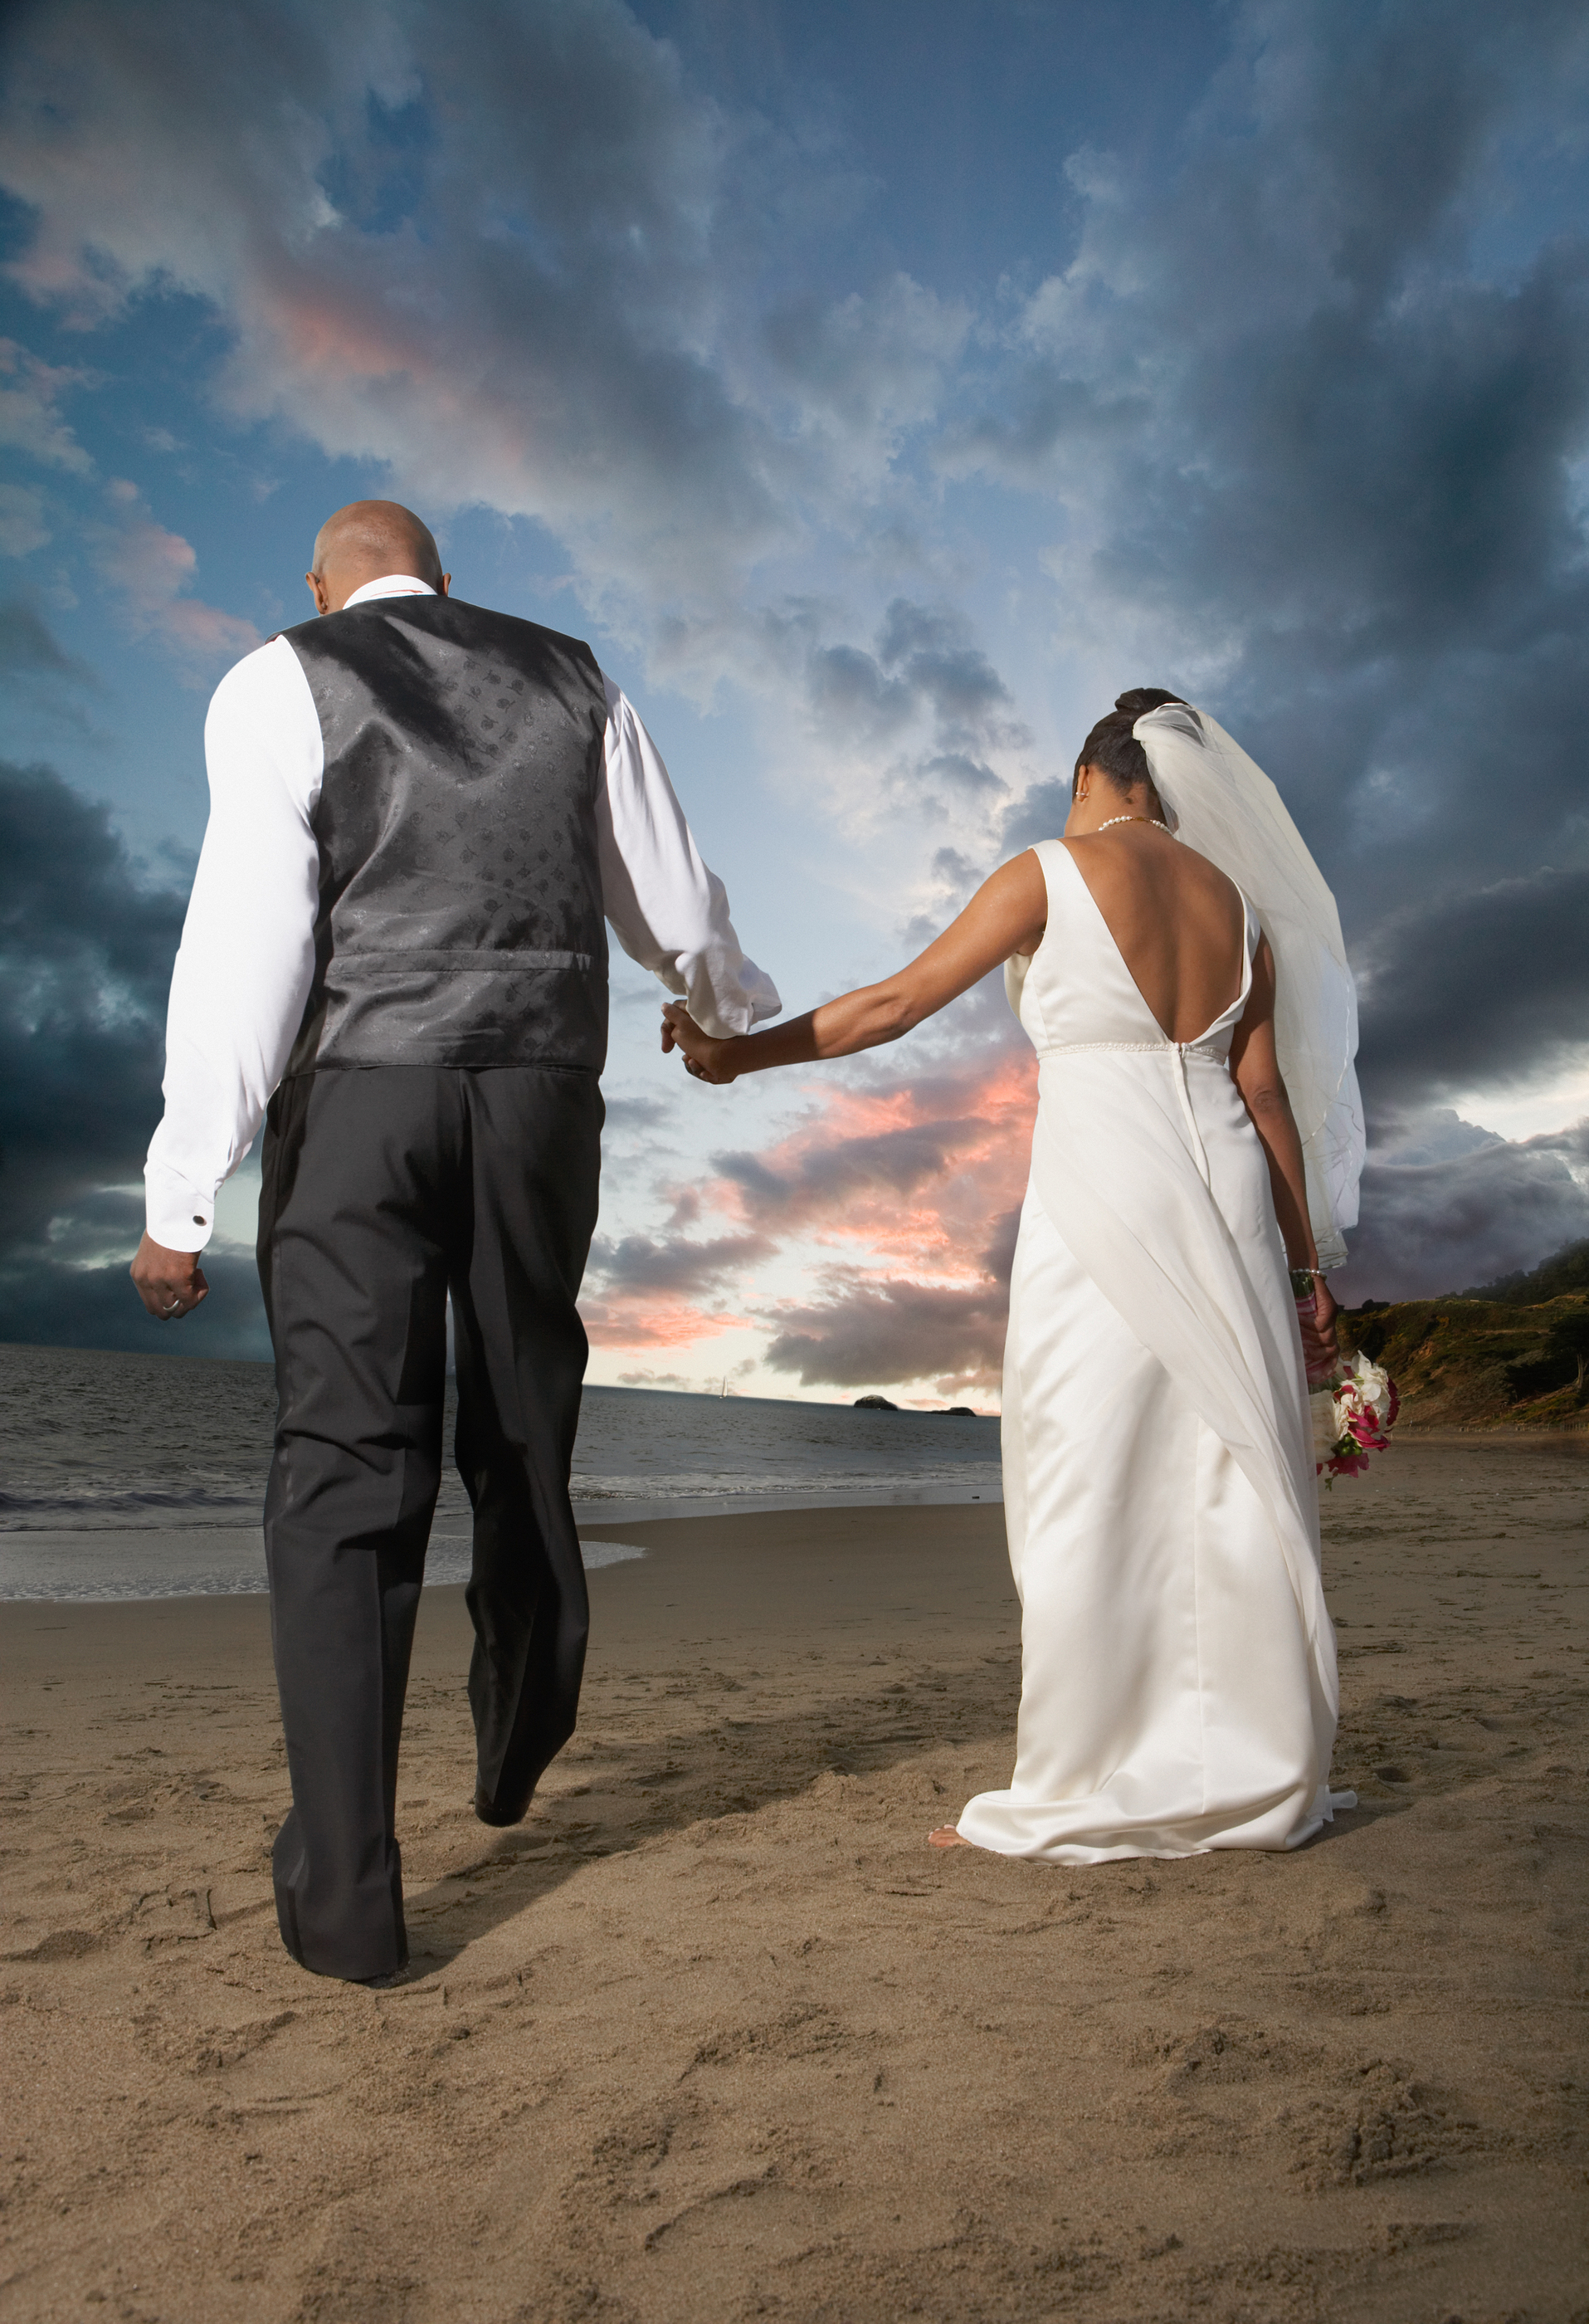 Newlyweds walking on the beach